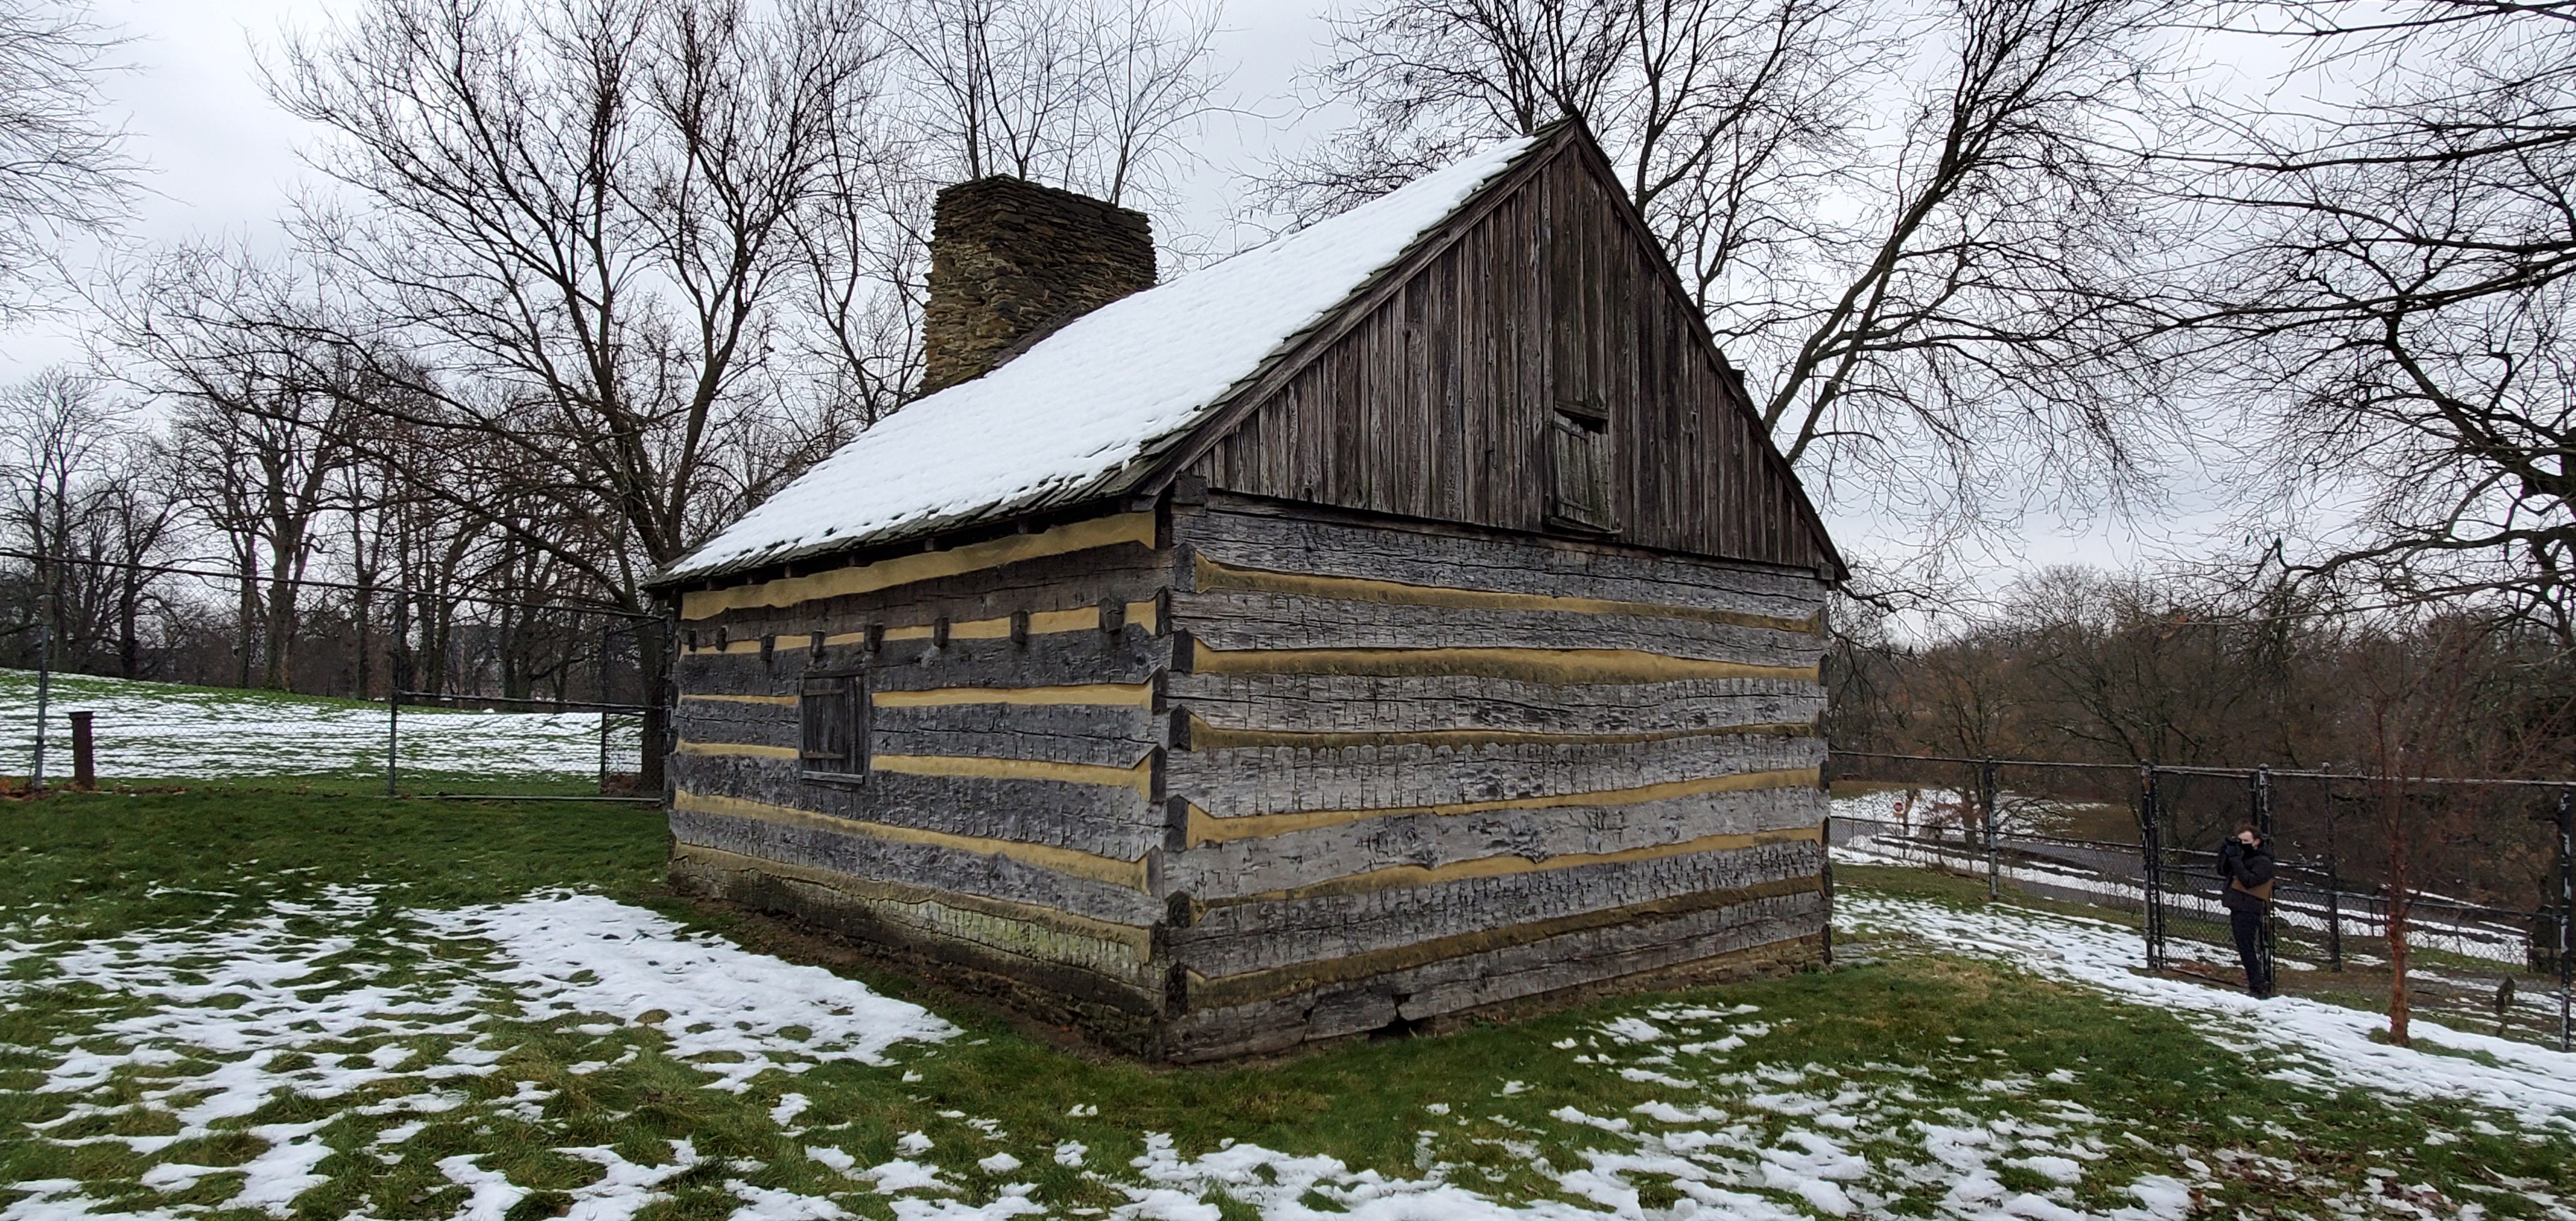 Neill Log House in present day with snow around the log house